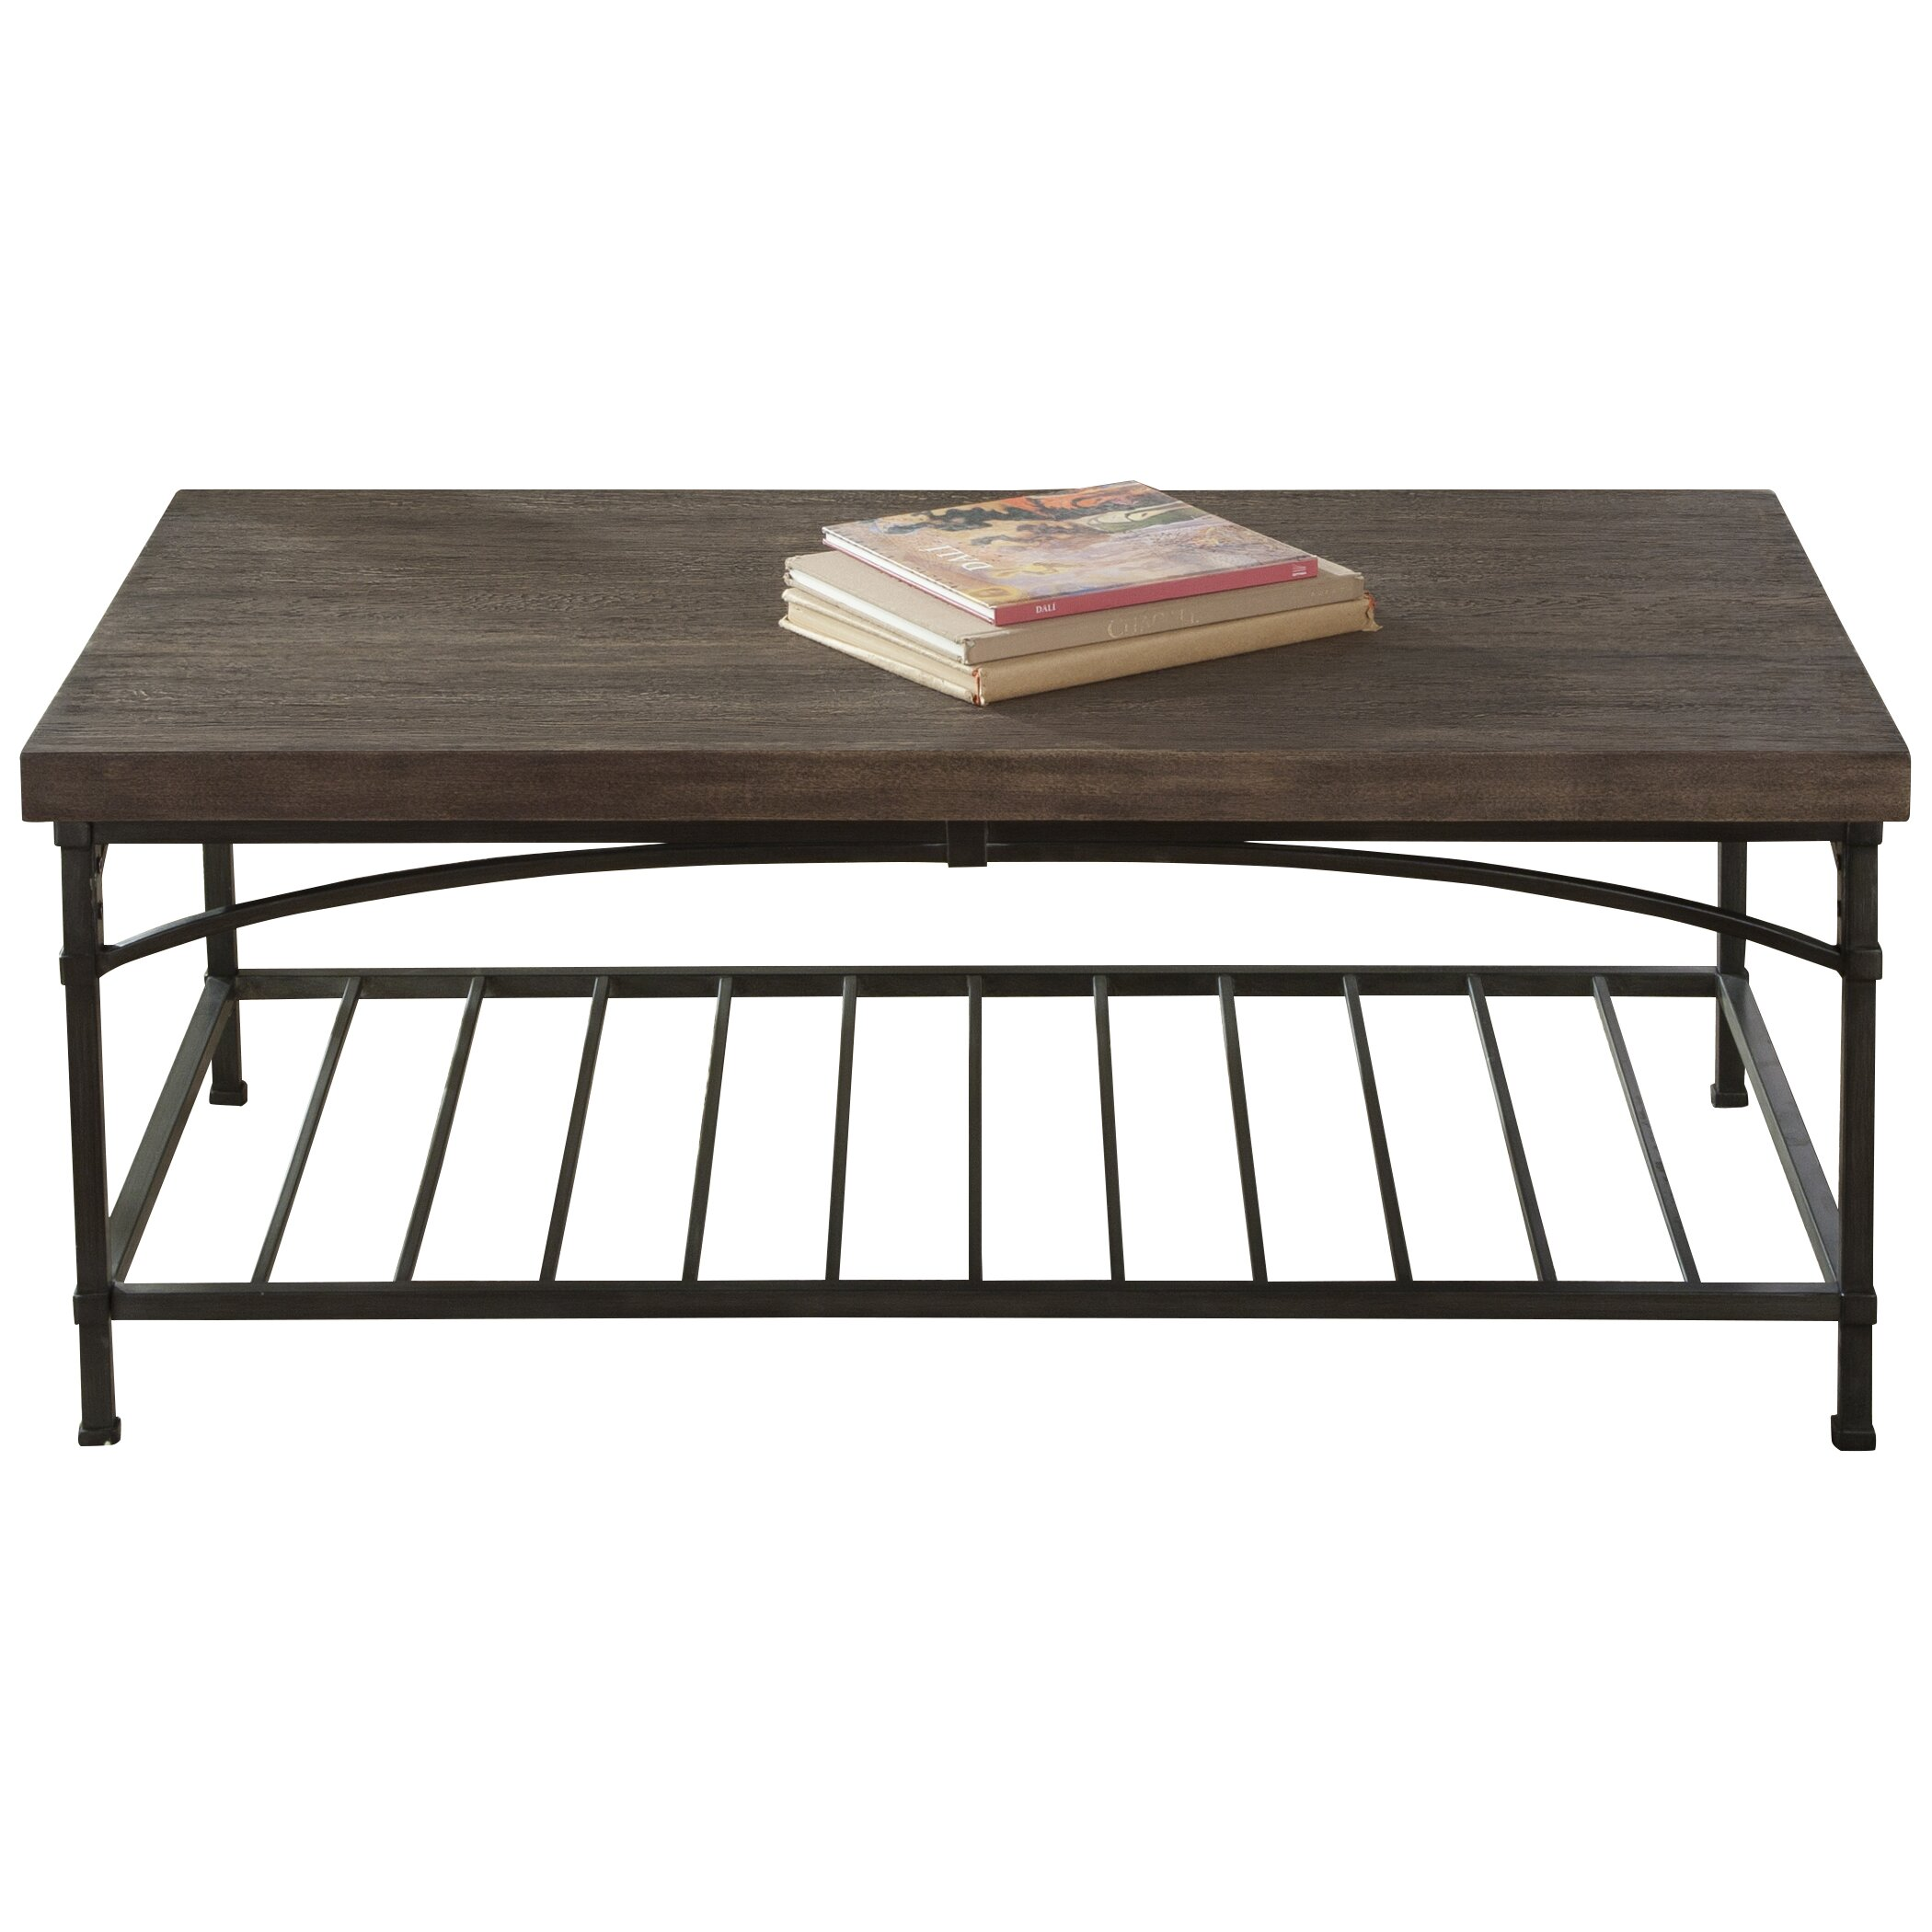 Coffee Tables Next Day Delivery From Images